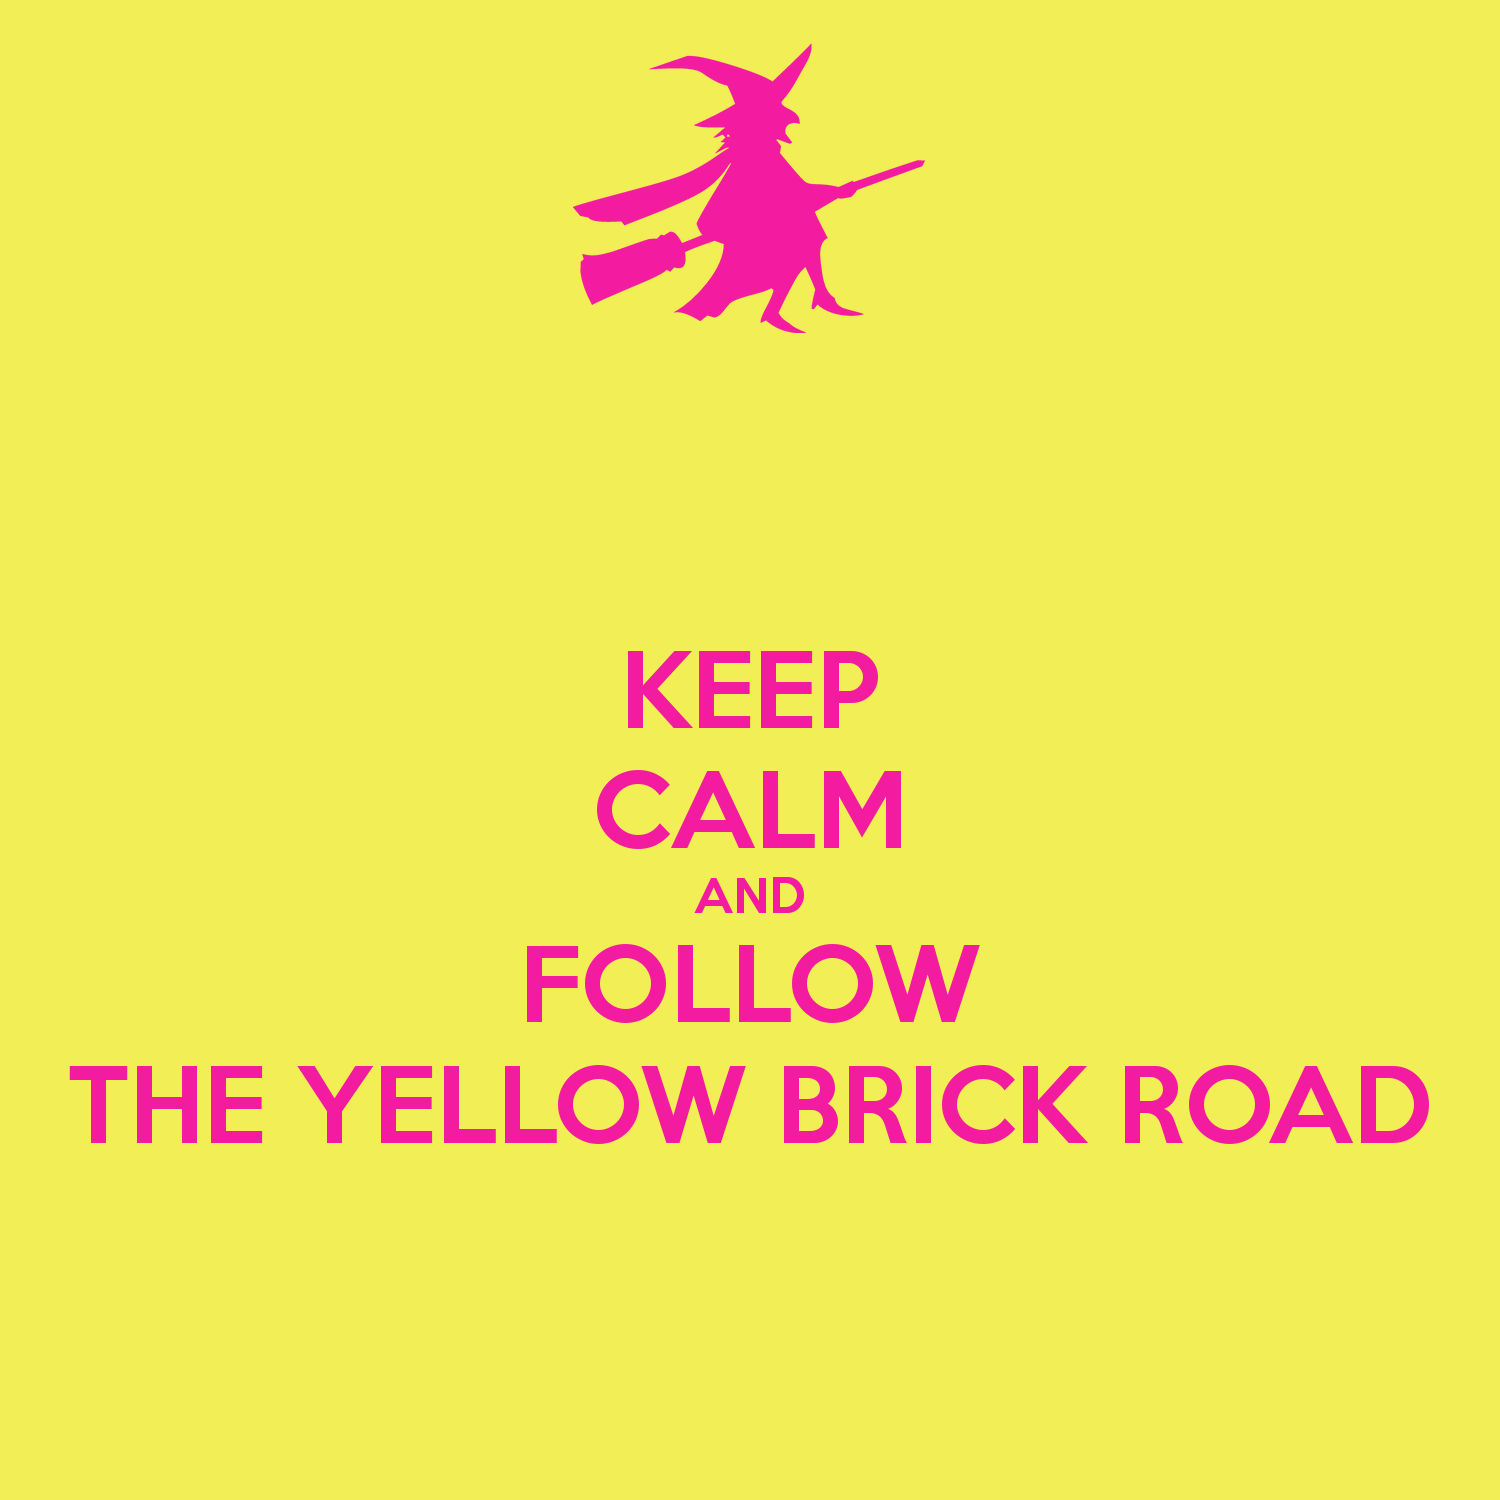 KEEP CALM AND FOLLOW THE YELLOW BRICK ROAD   KEEP CALM AND CARRY ON 1500x1500